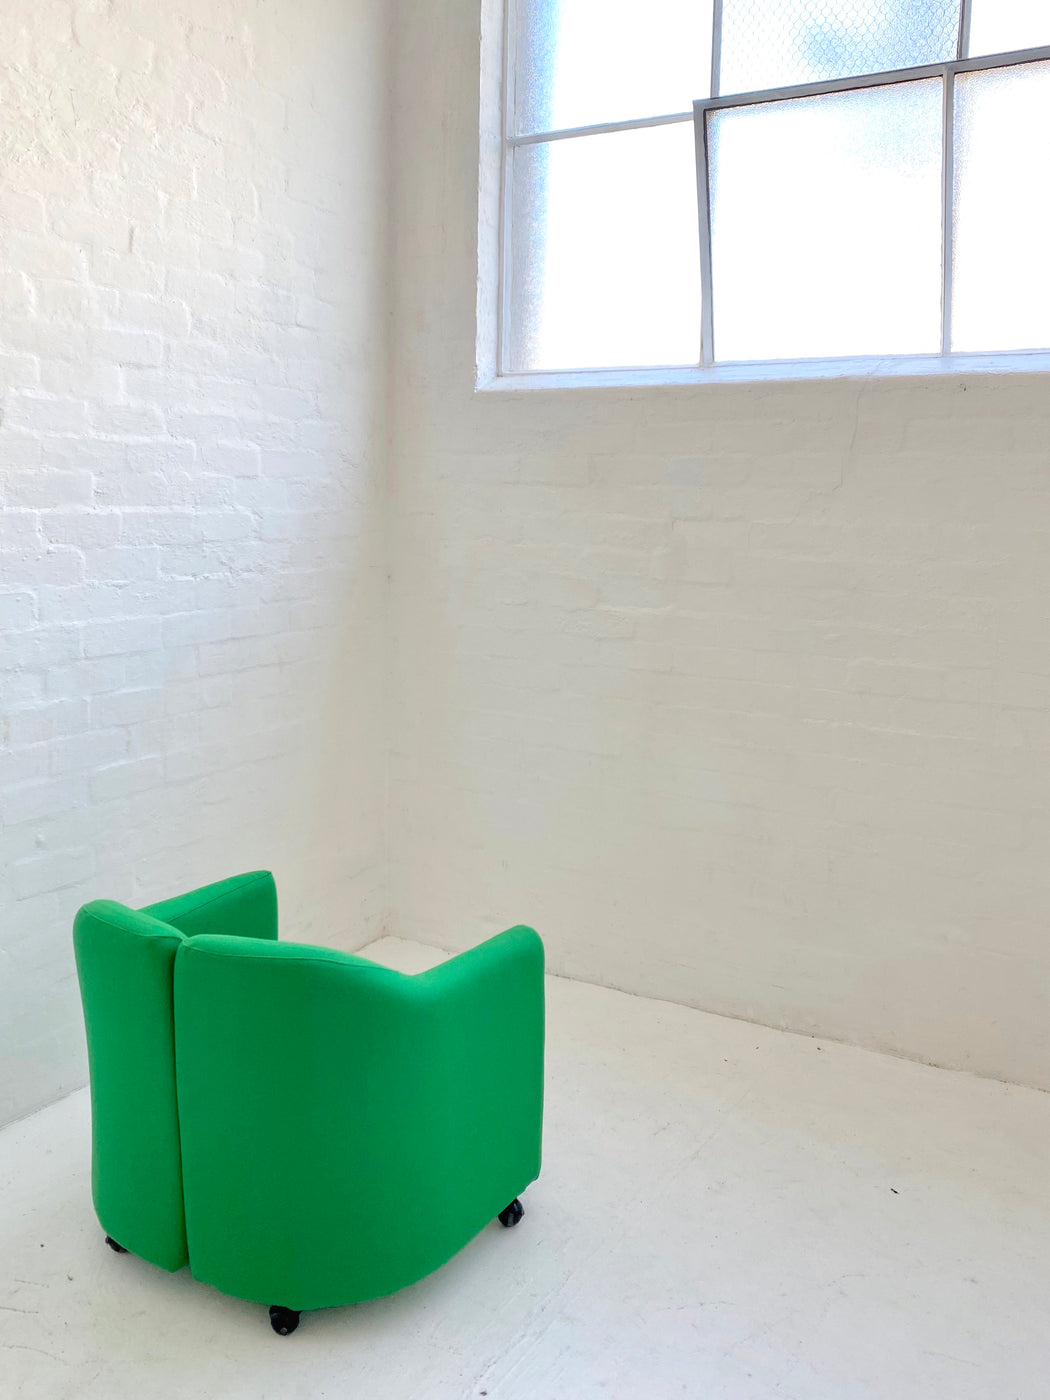 Eugenio Gerli 'PS142' Chair